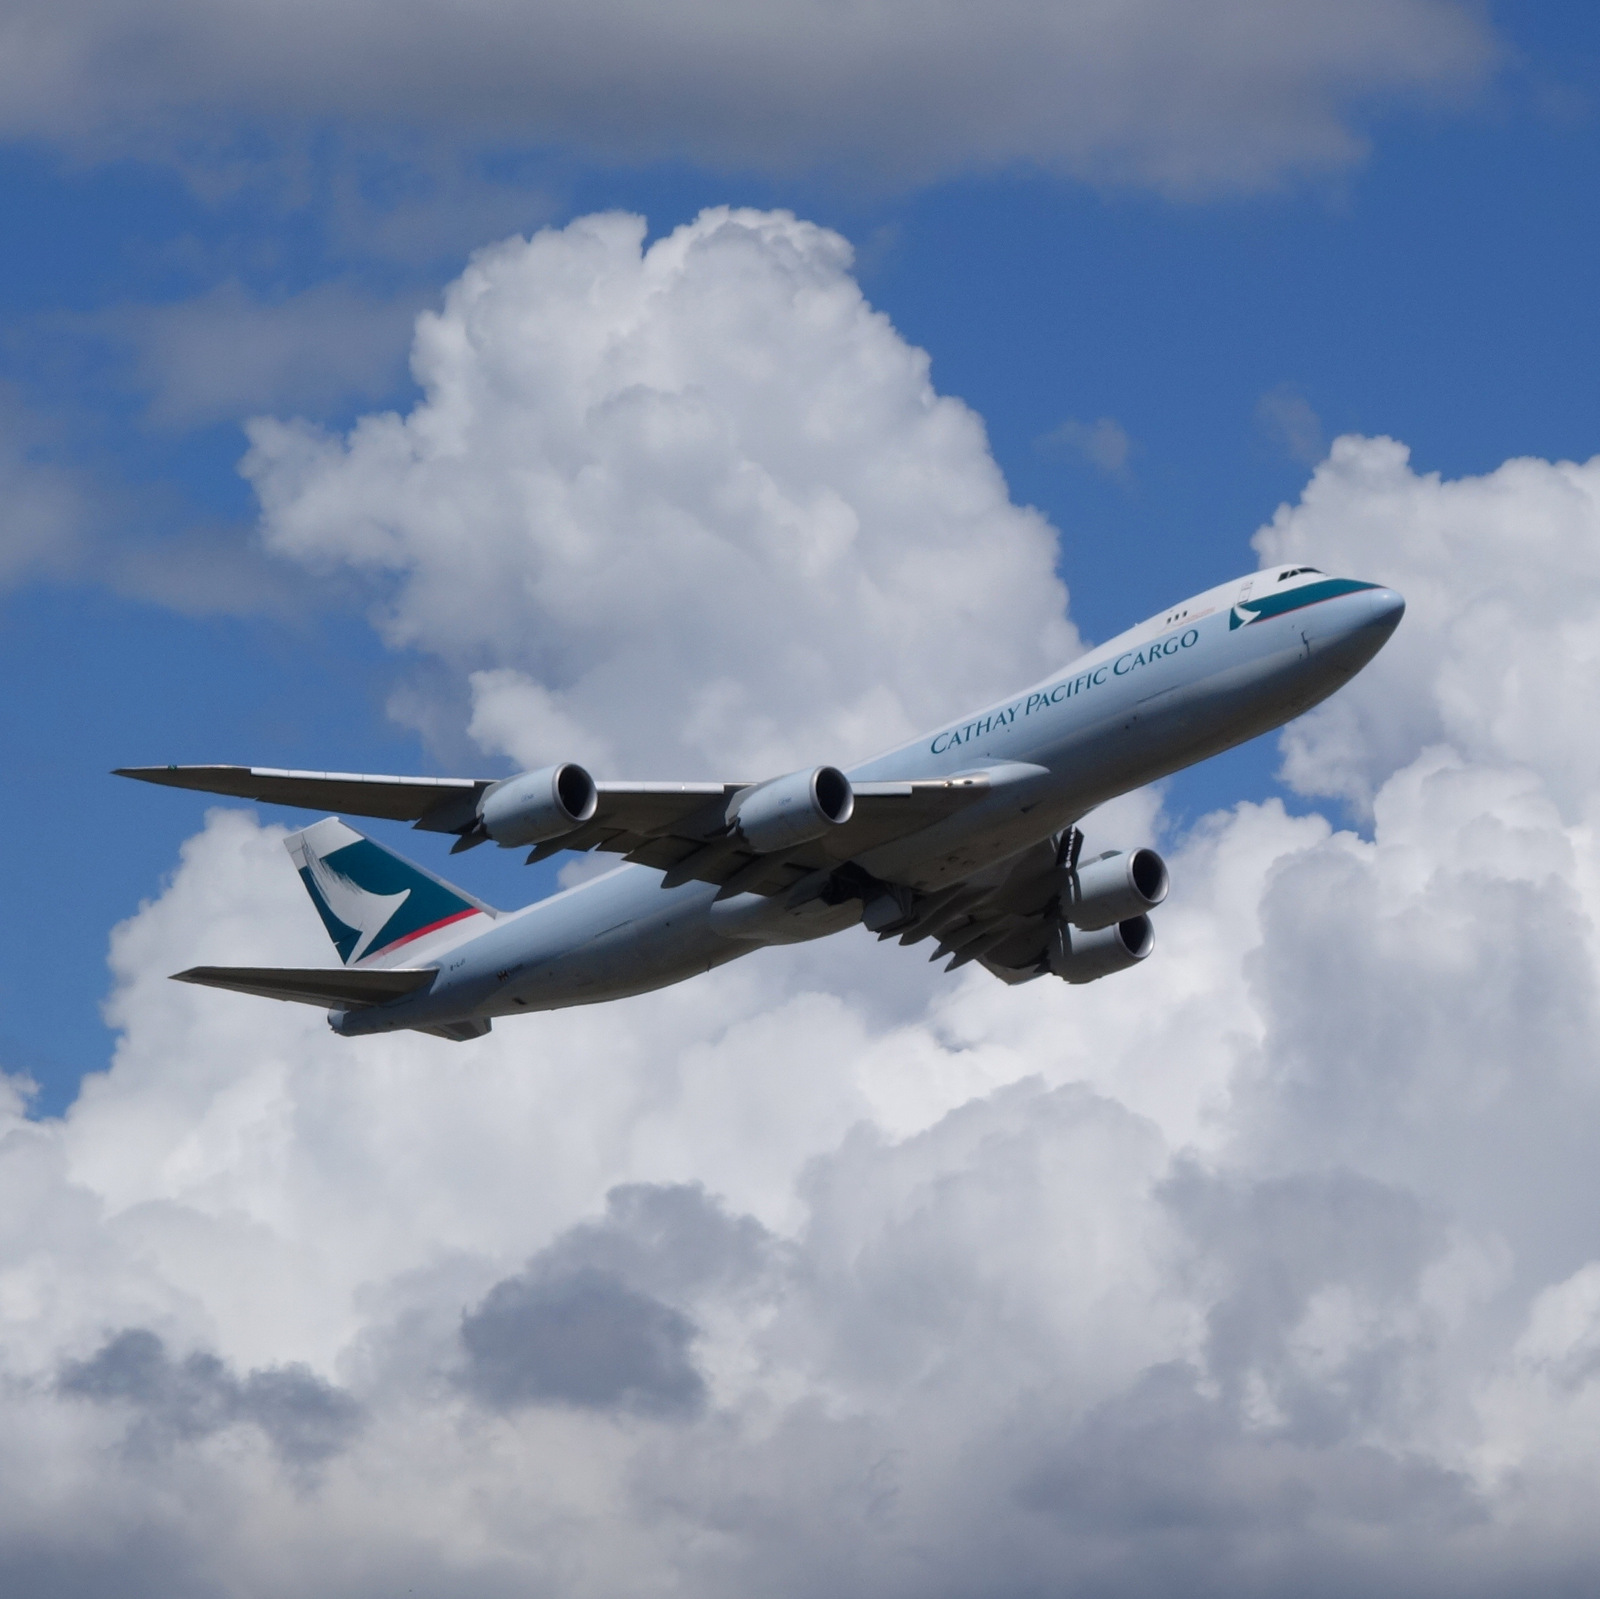 Cathay Pacific 747-8F climbs out at YVR